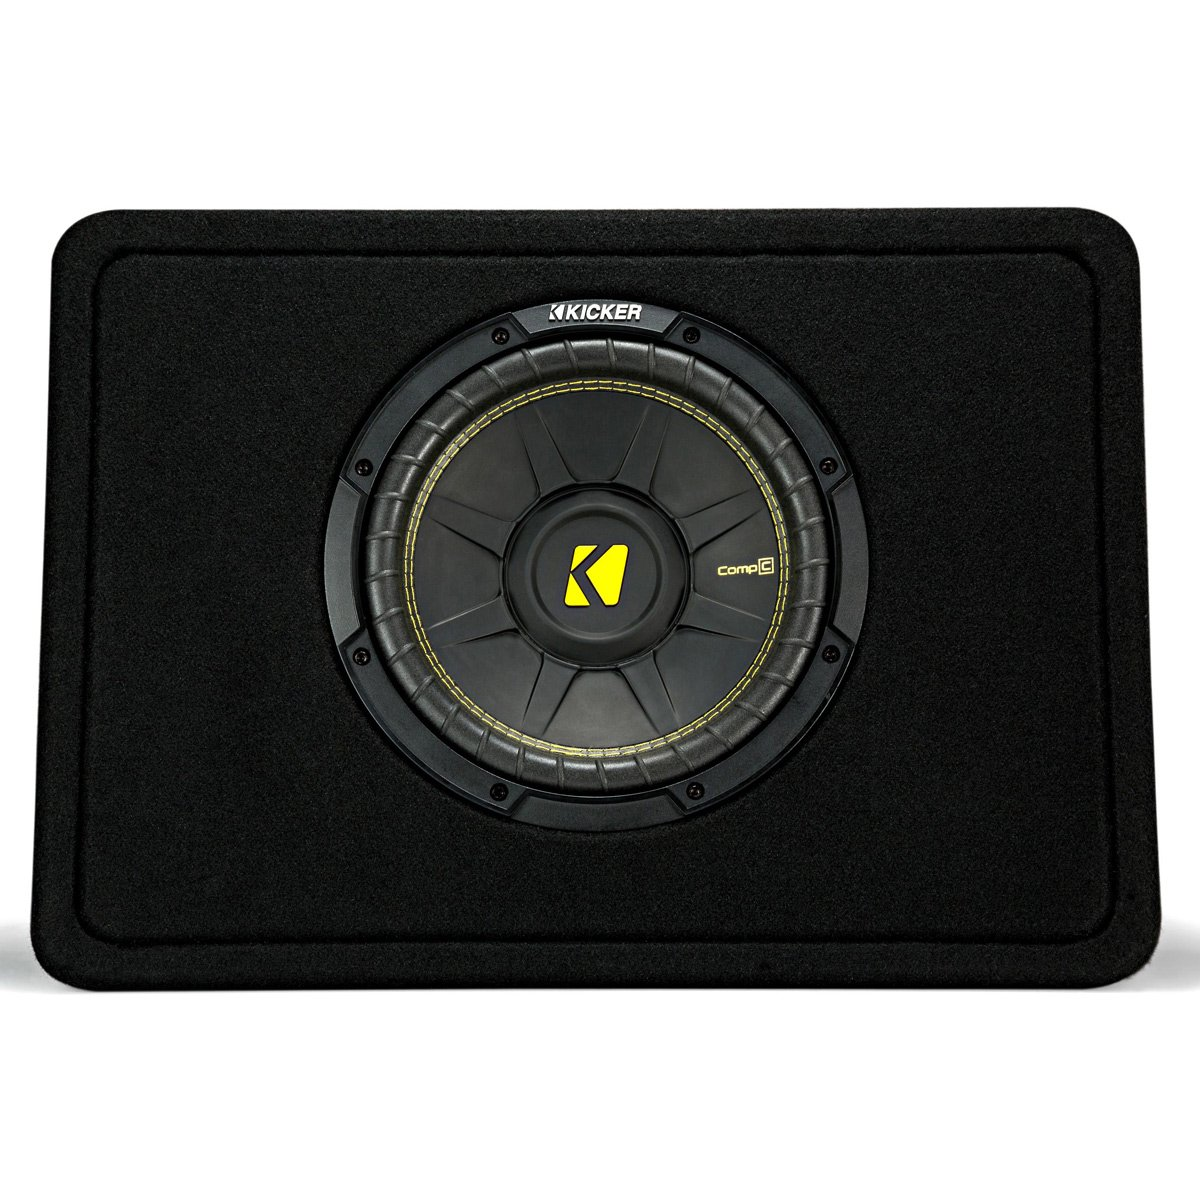 Kicker 10'' 600 Watt 4 Ohm Vented Thin Profile Subwoofer Enclosure | 44TCWC104 by KICKER